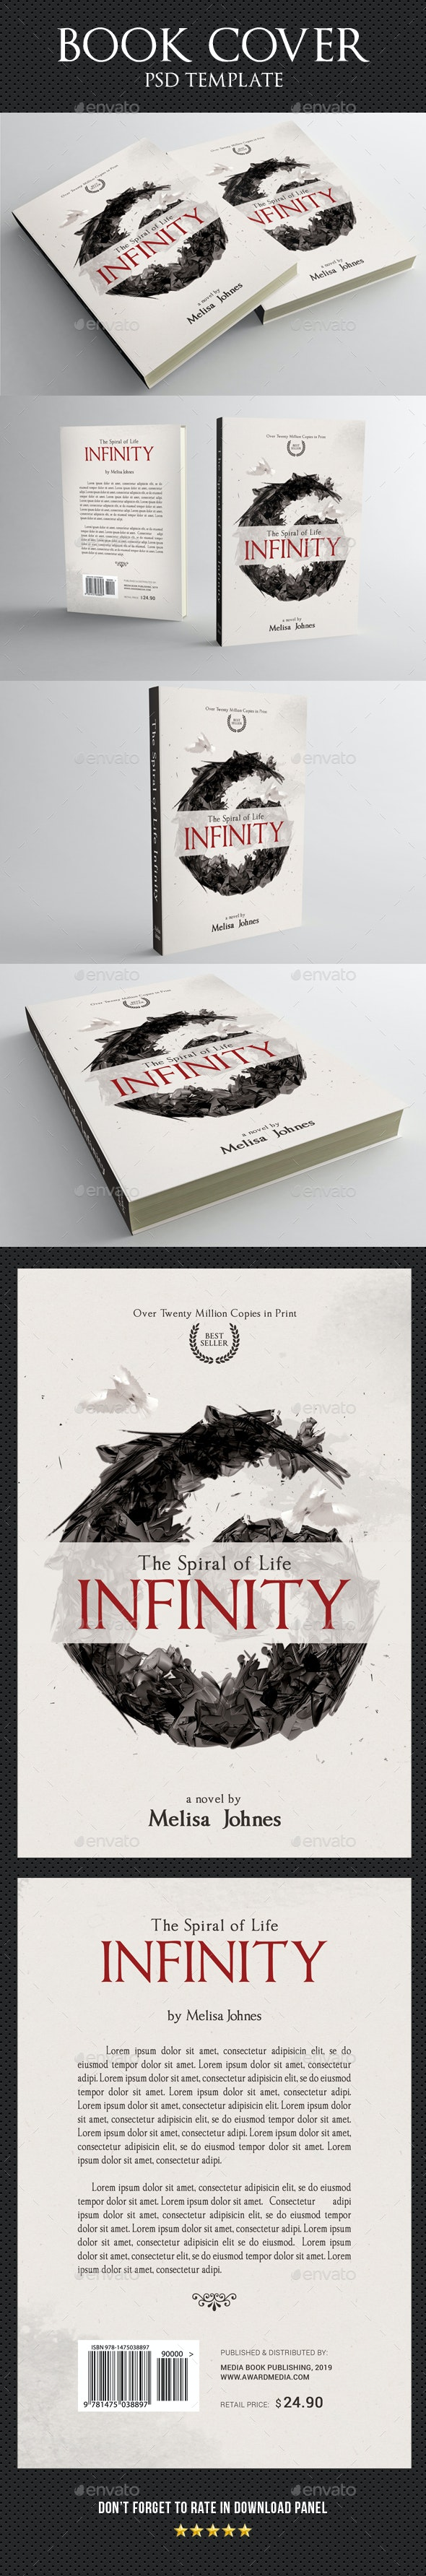 Book Cover Template 58 - Miscellaneous Print Templates